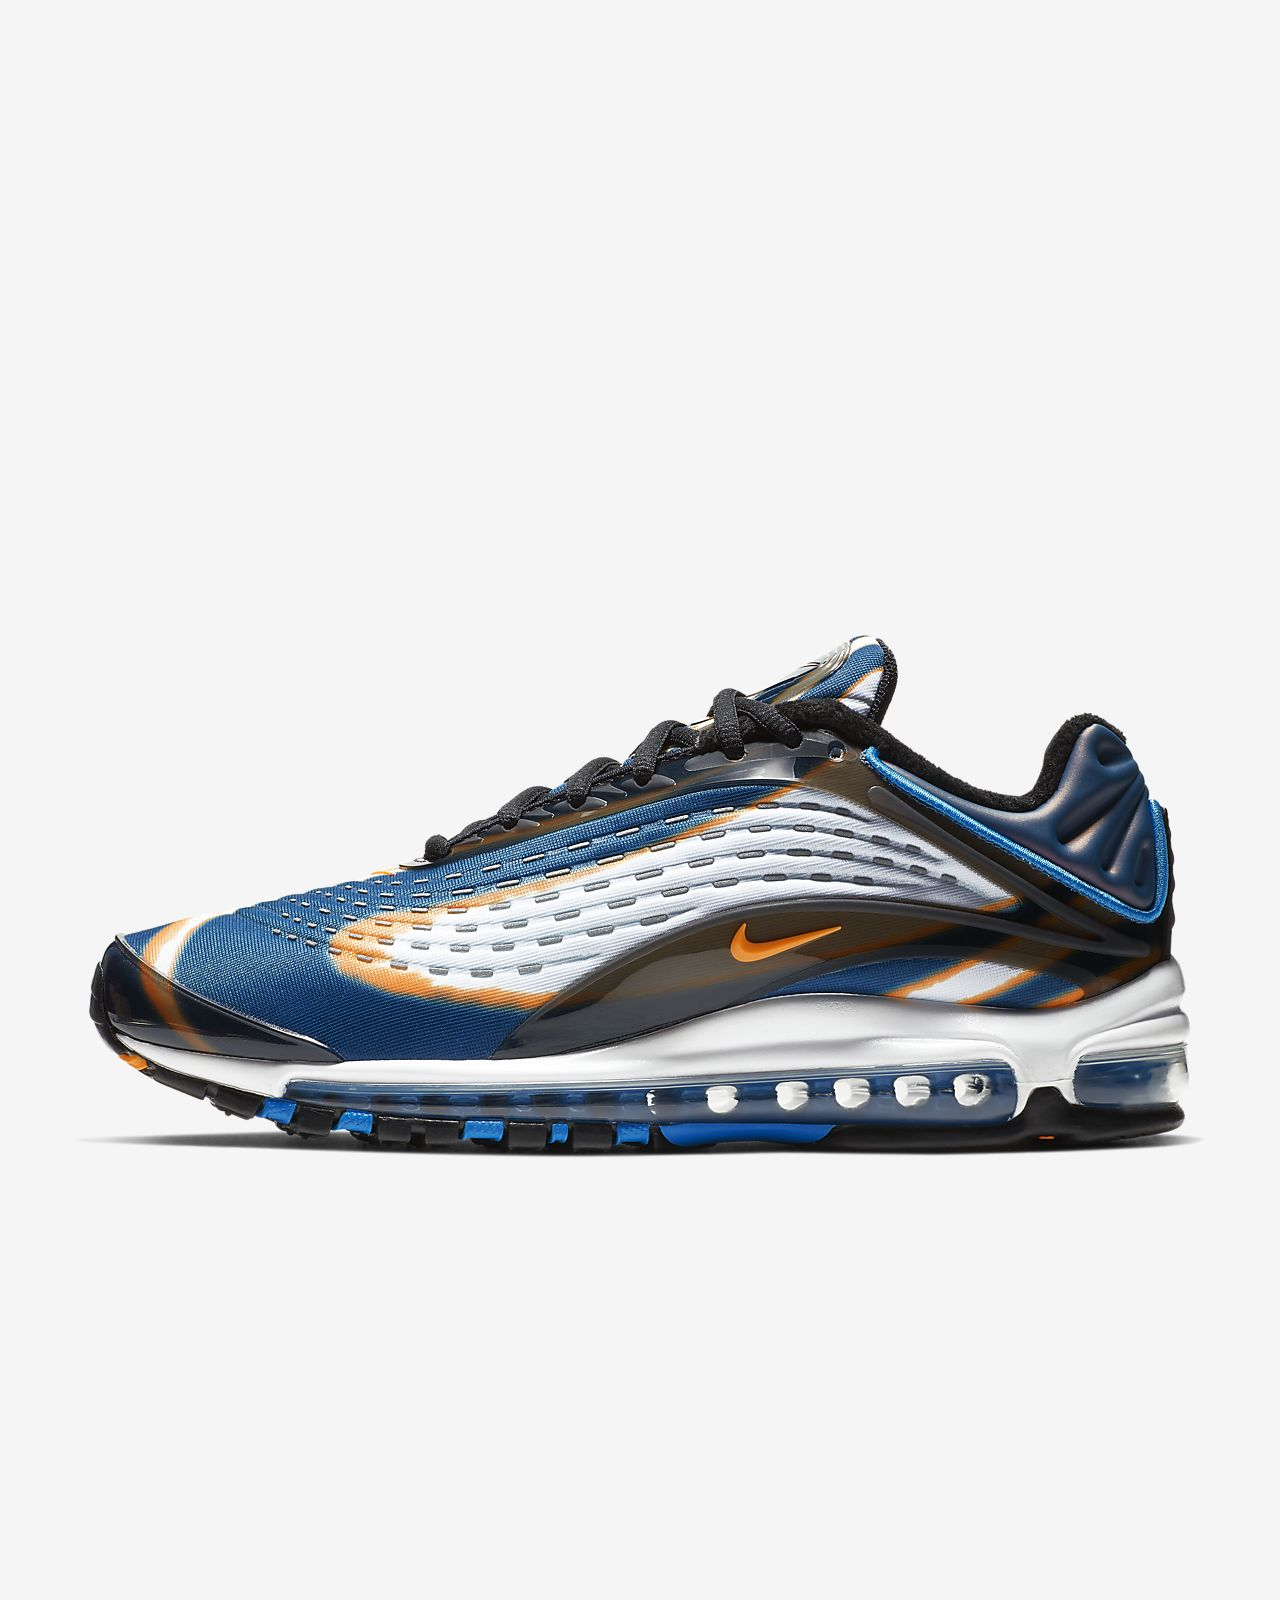 separation shoes 8d920 78a1b ... Nike Air Max Deluxe Men s Shoe